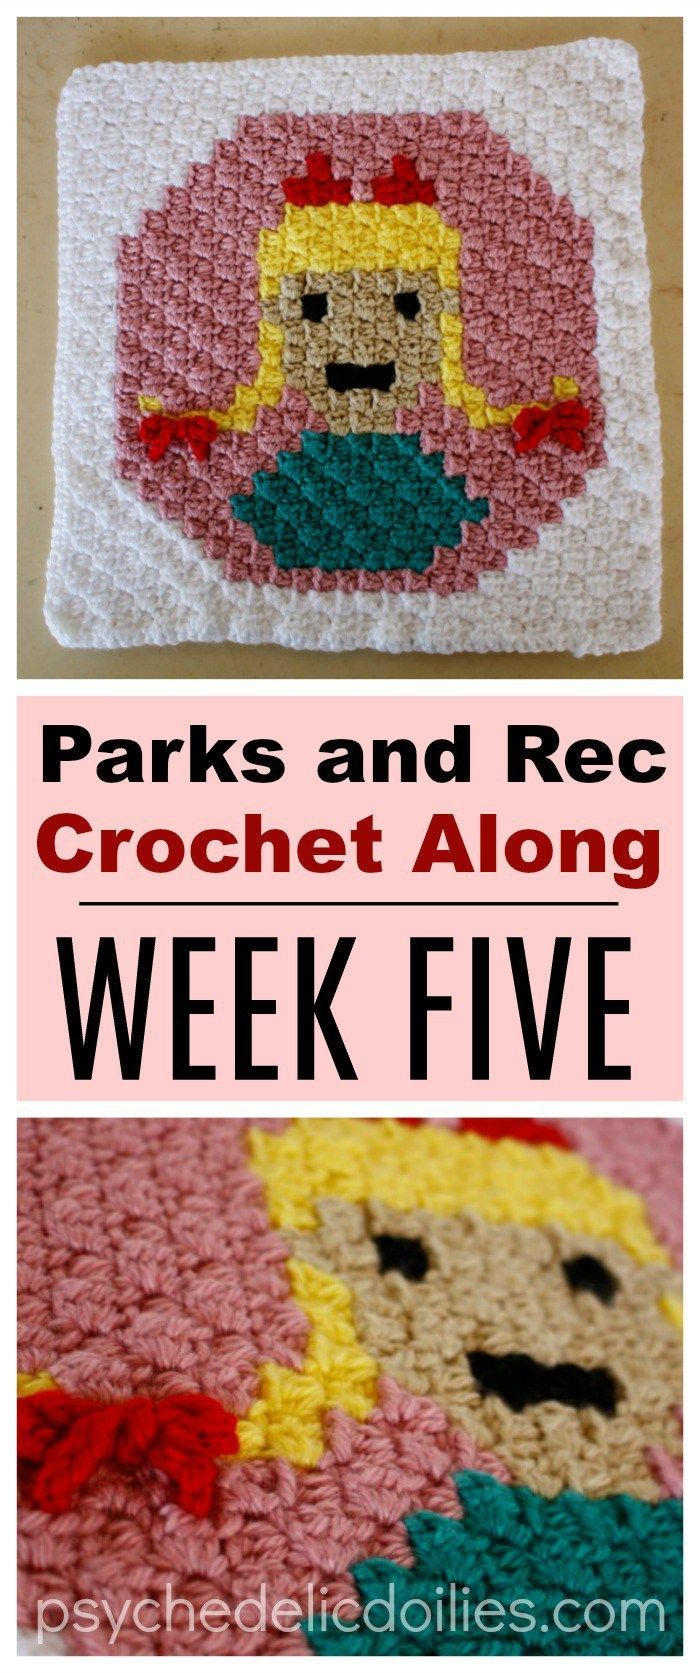 Parks and Rec Crochet Along Week 5 - Sweetums